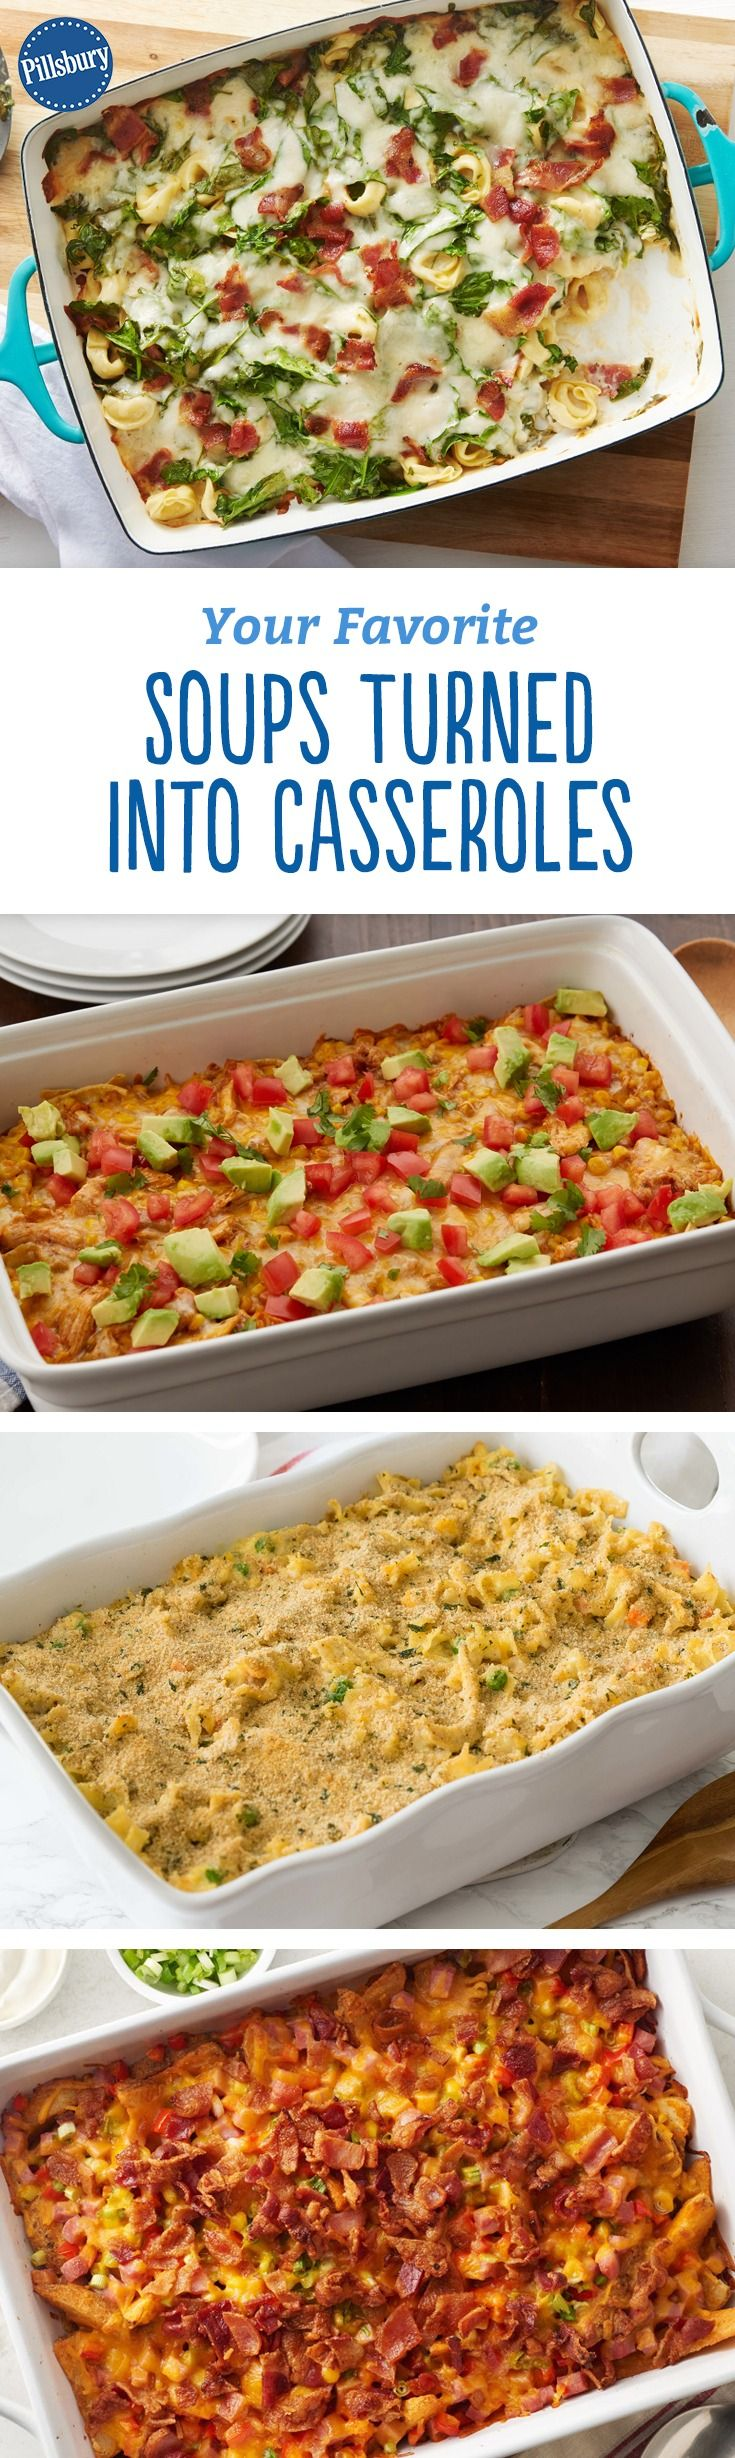 That's right. We took the best classic soups and turned them into filling, easy-to-make casseroles. Loaded Baked Potato? Check! Chicken Noodle Casserole? You bet!